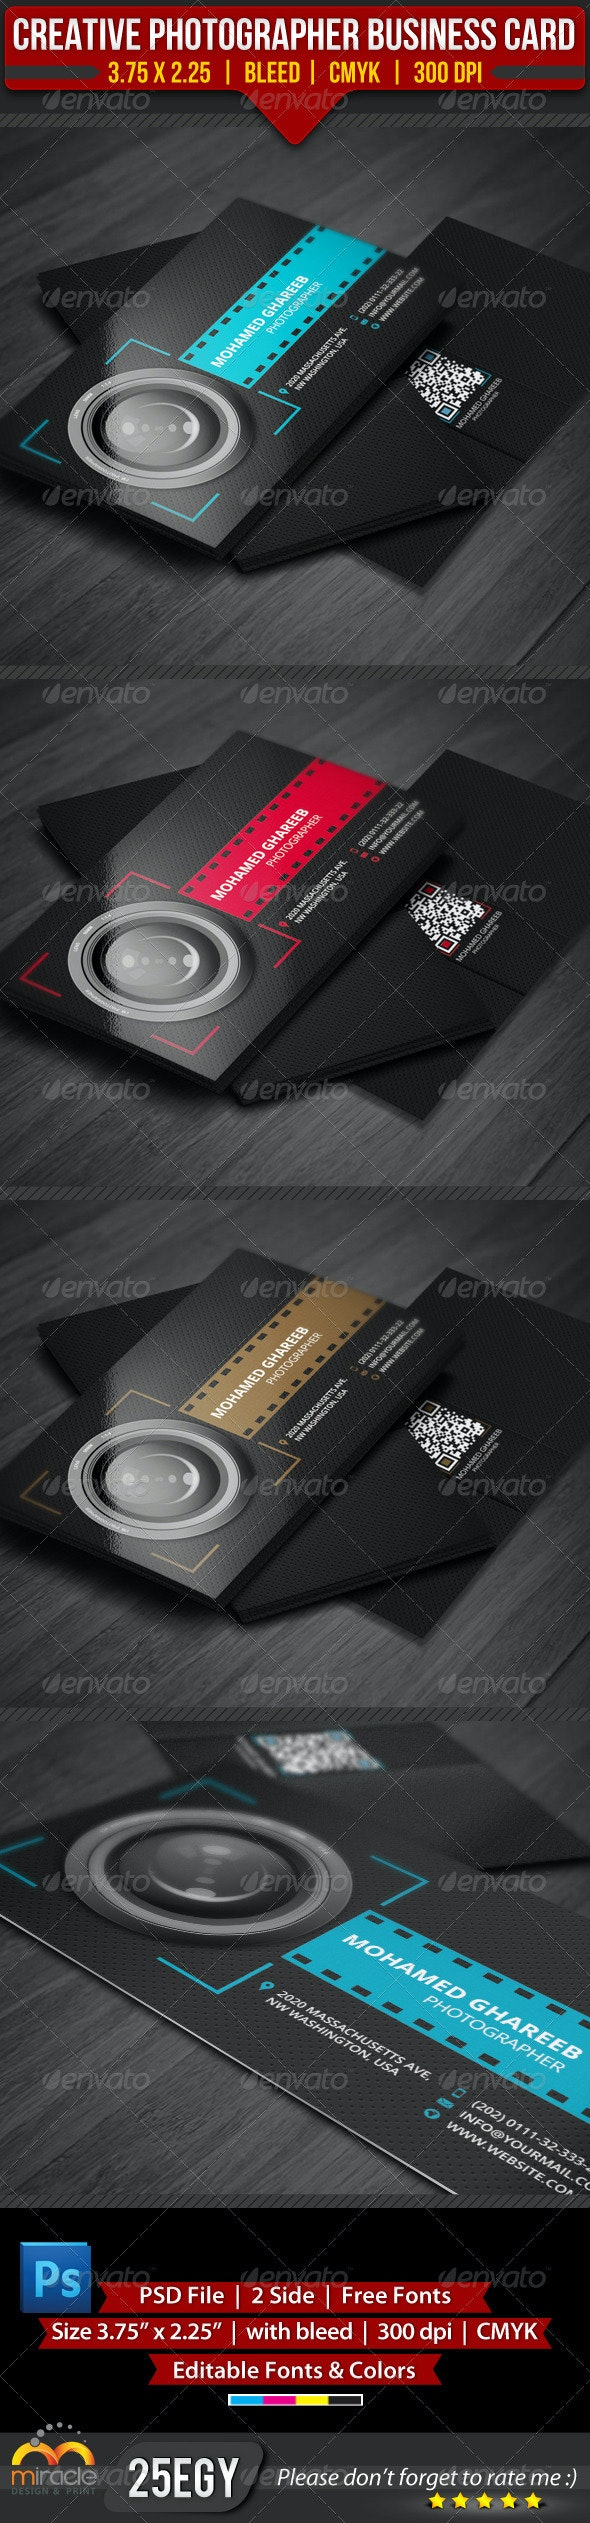 Creative Photographer Business Card - Industry Specific Business Cards